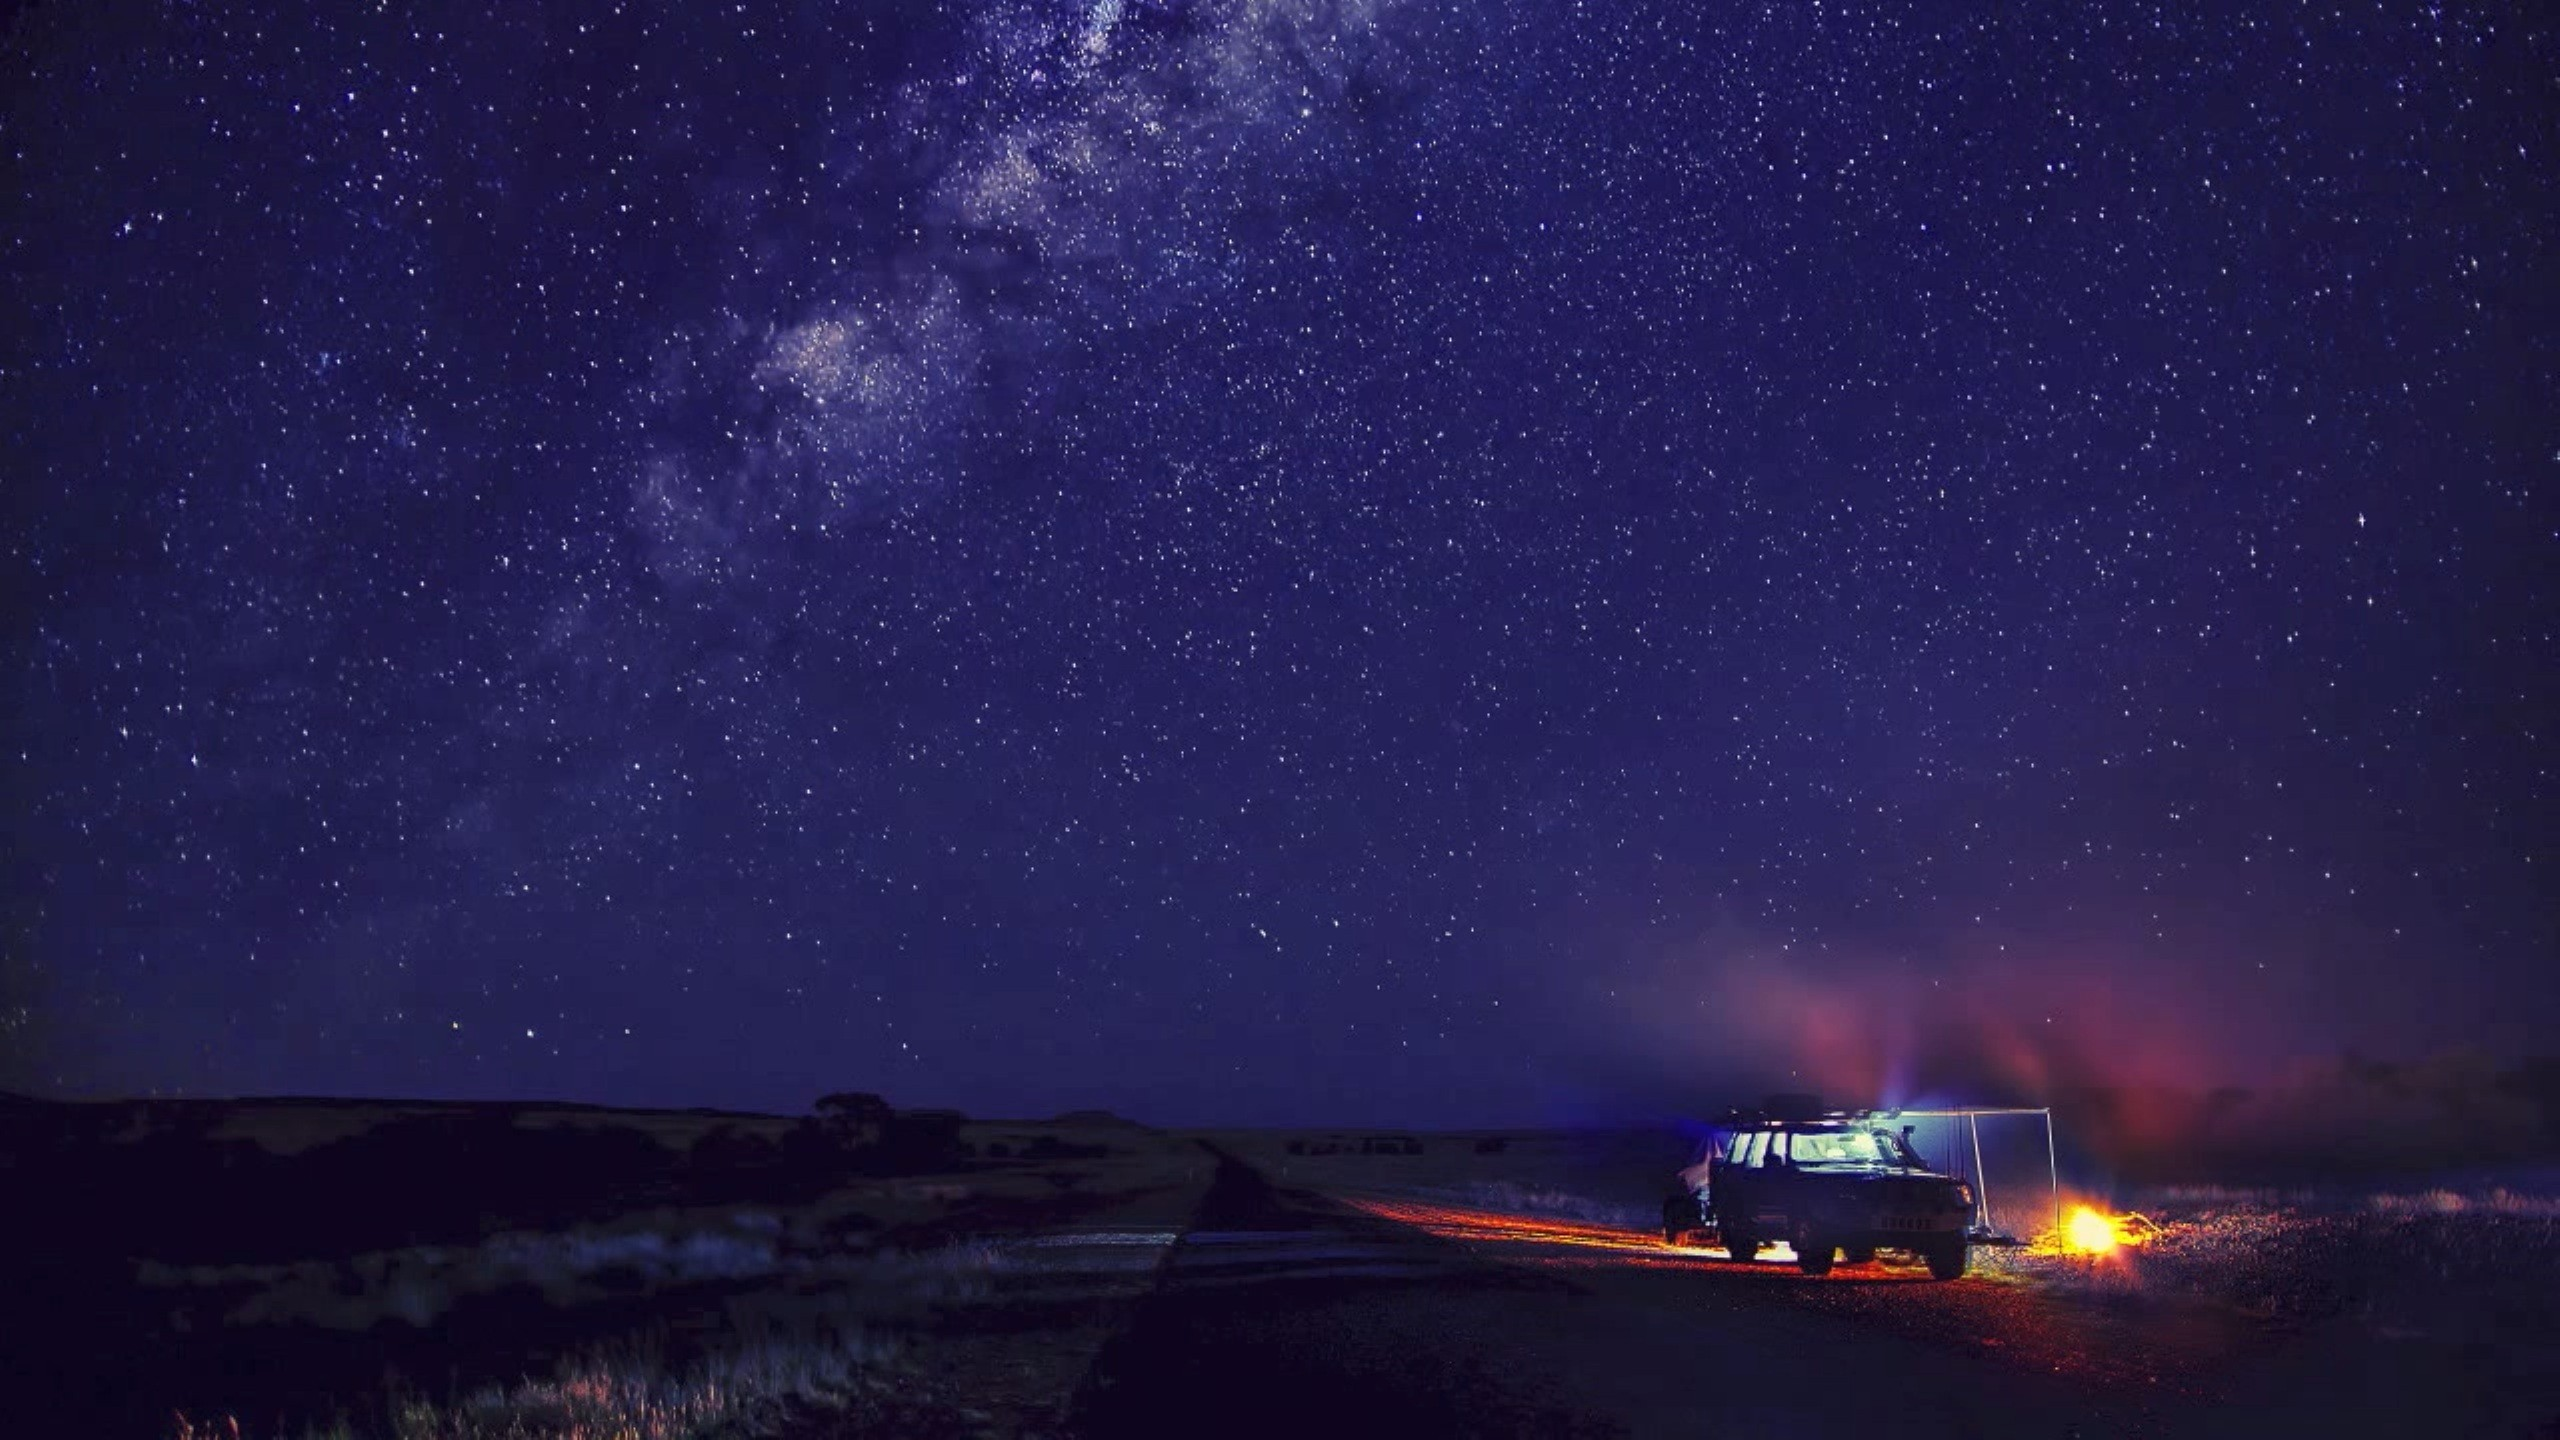 Camp and Starry Sky desktop PC and Mac wallpaper